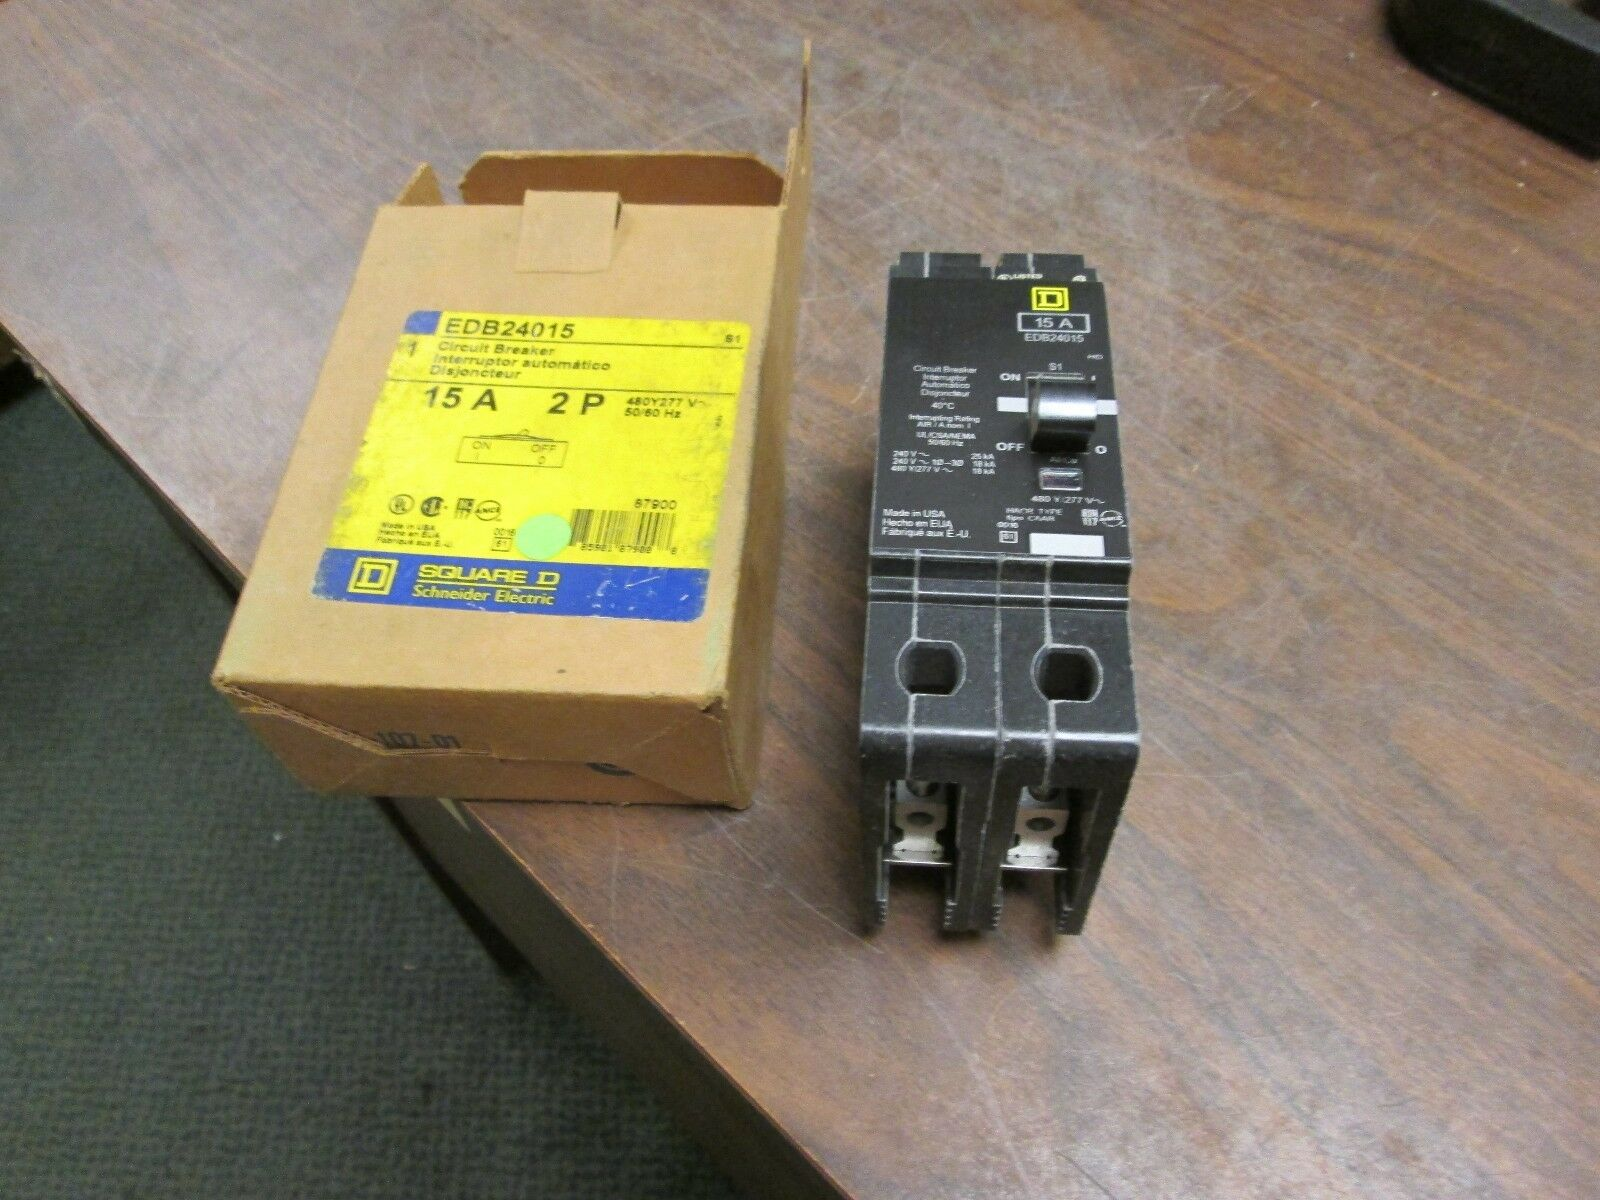 Square D Circuit Breaker Edb24015 15a 2p 480y 277v 50 60hz New Home Residential Zinsco Type R38 Surplus